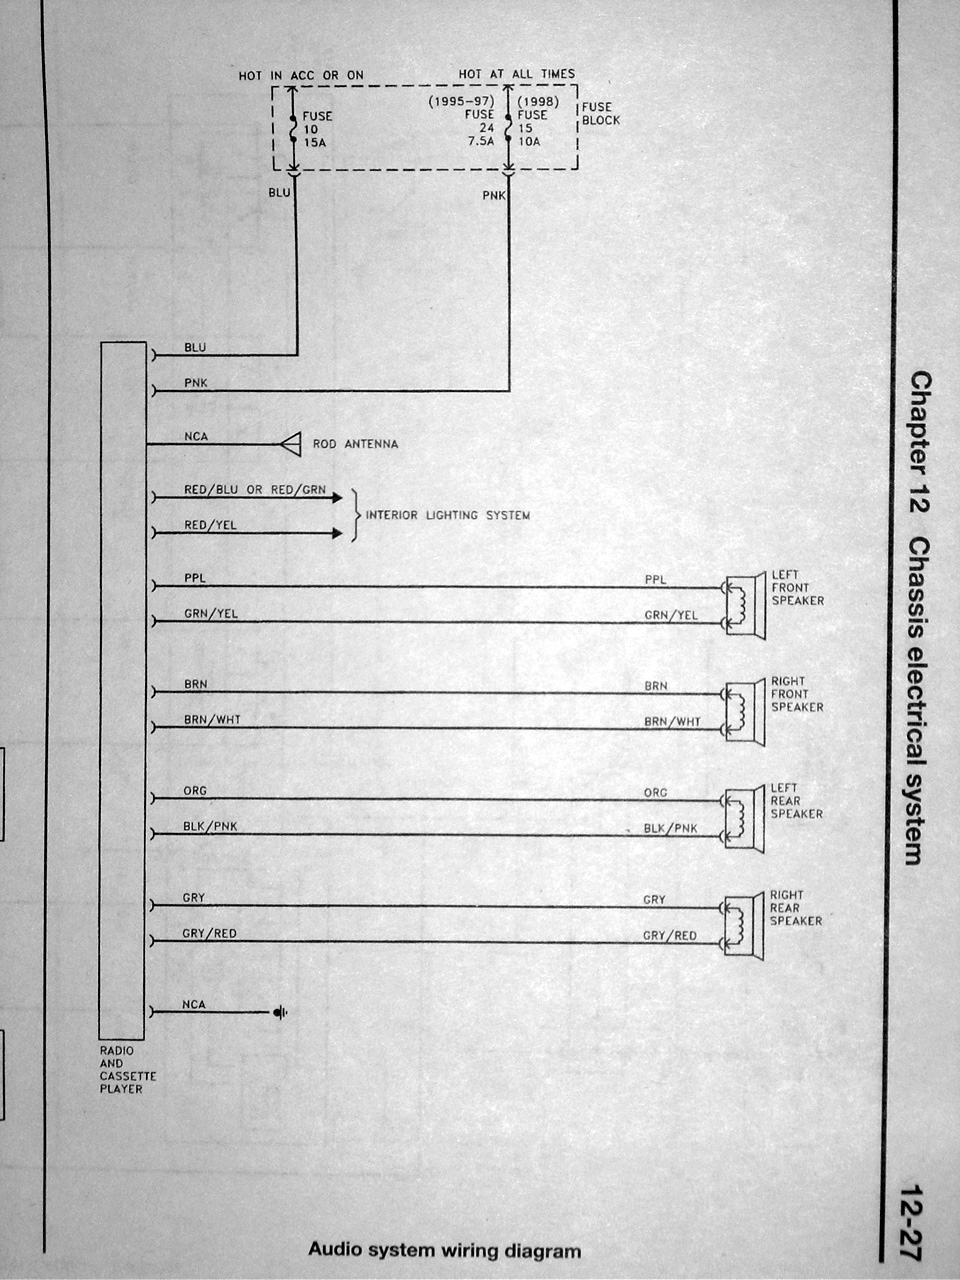 DSC01849 wiring diagram thread *useful info* nissan forum 2006 nissan frontier speaker wire diagram at honlapkeszites.co